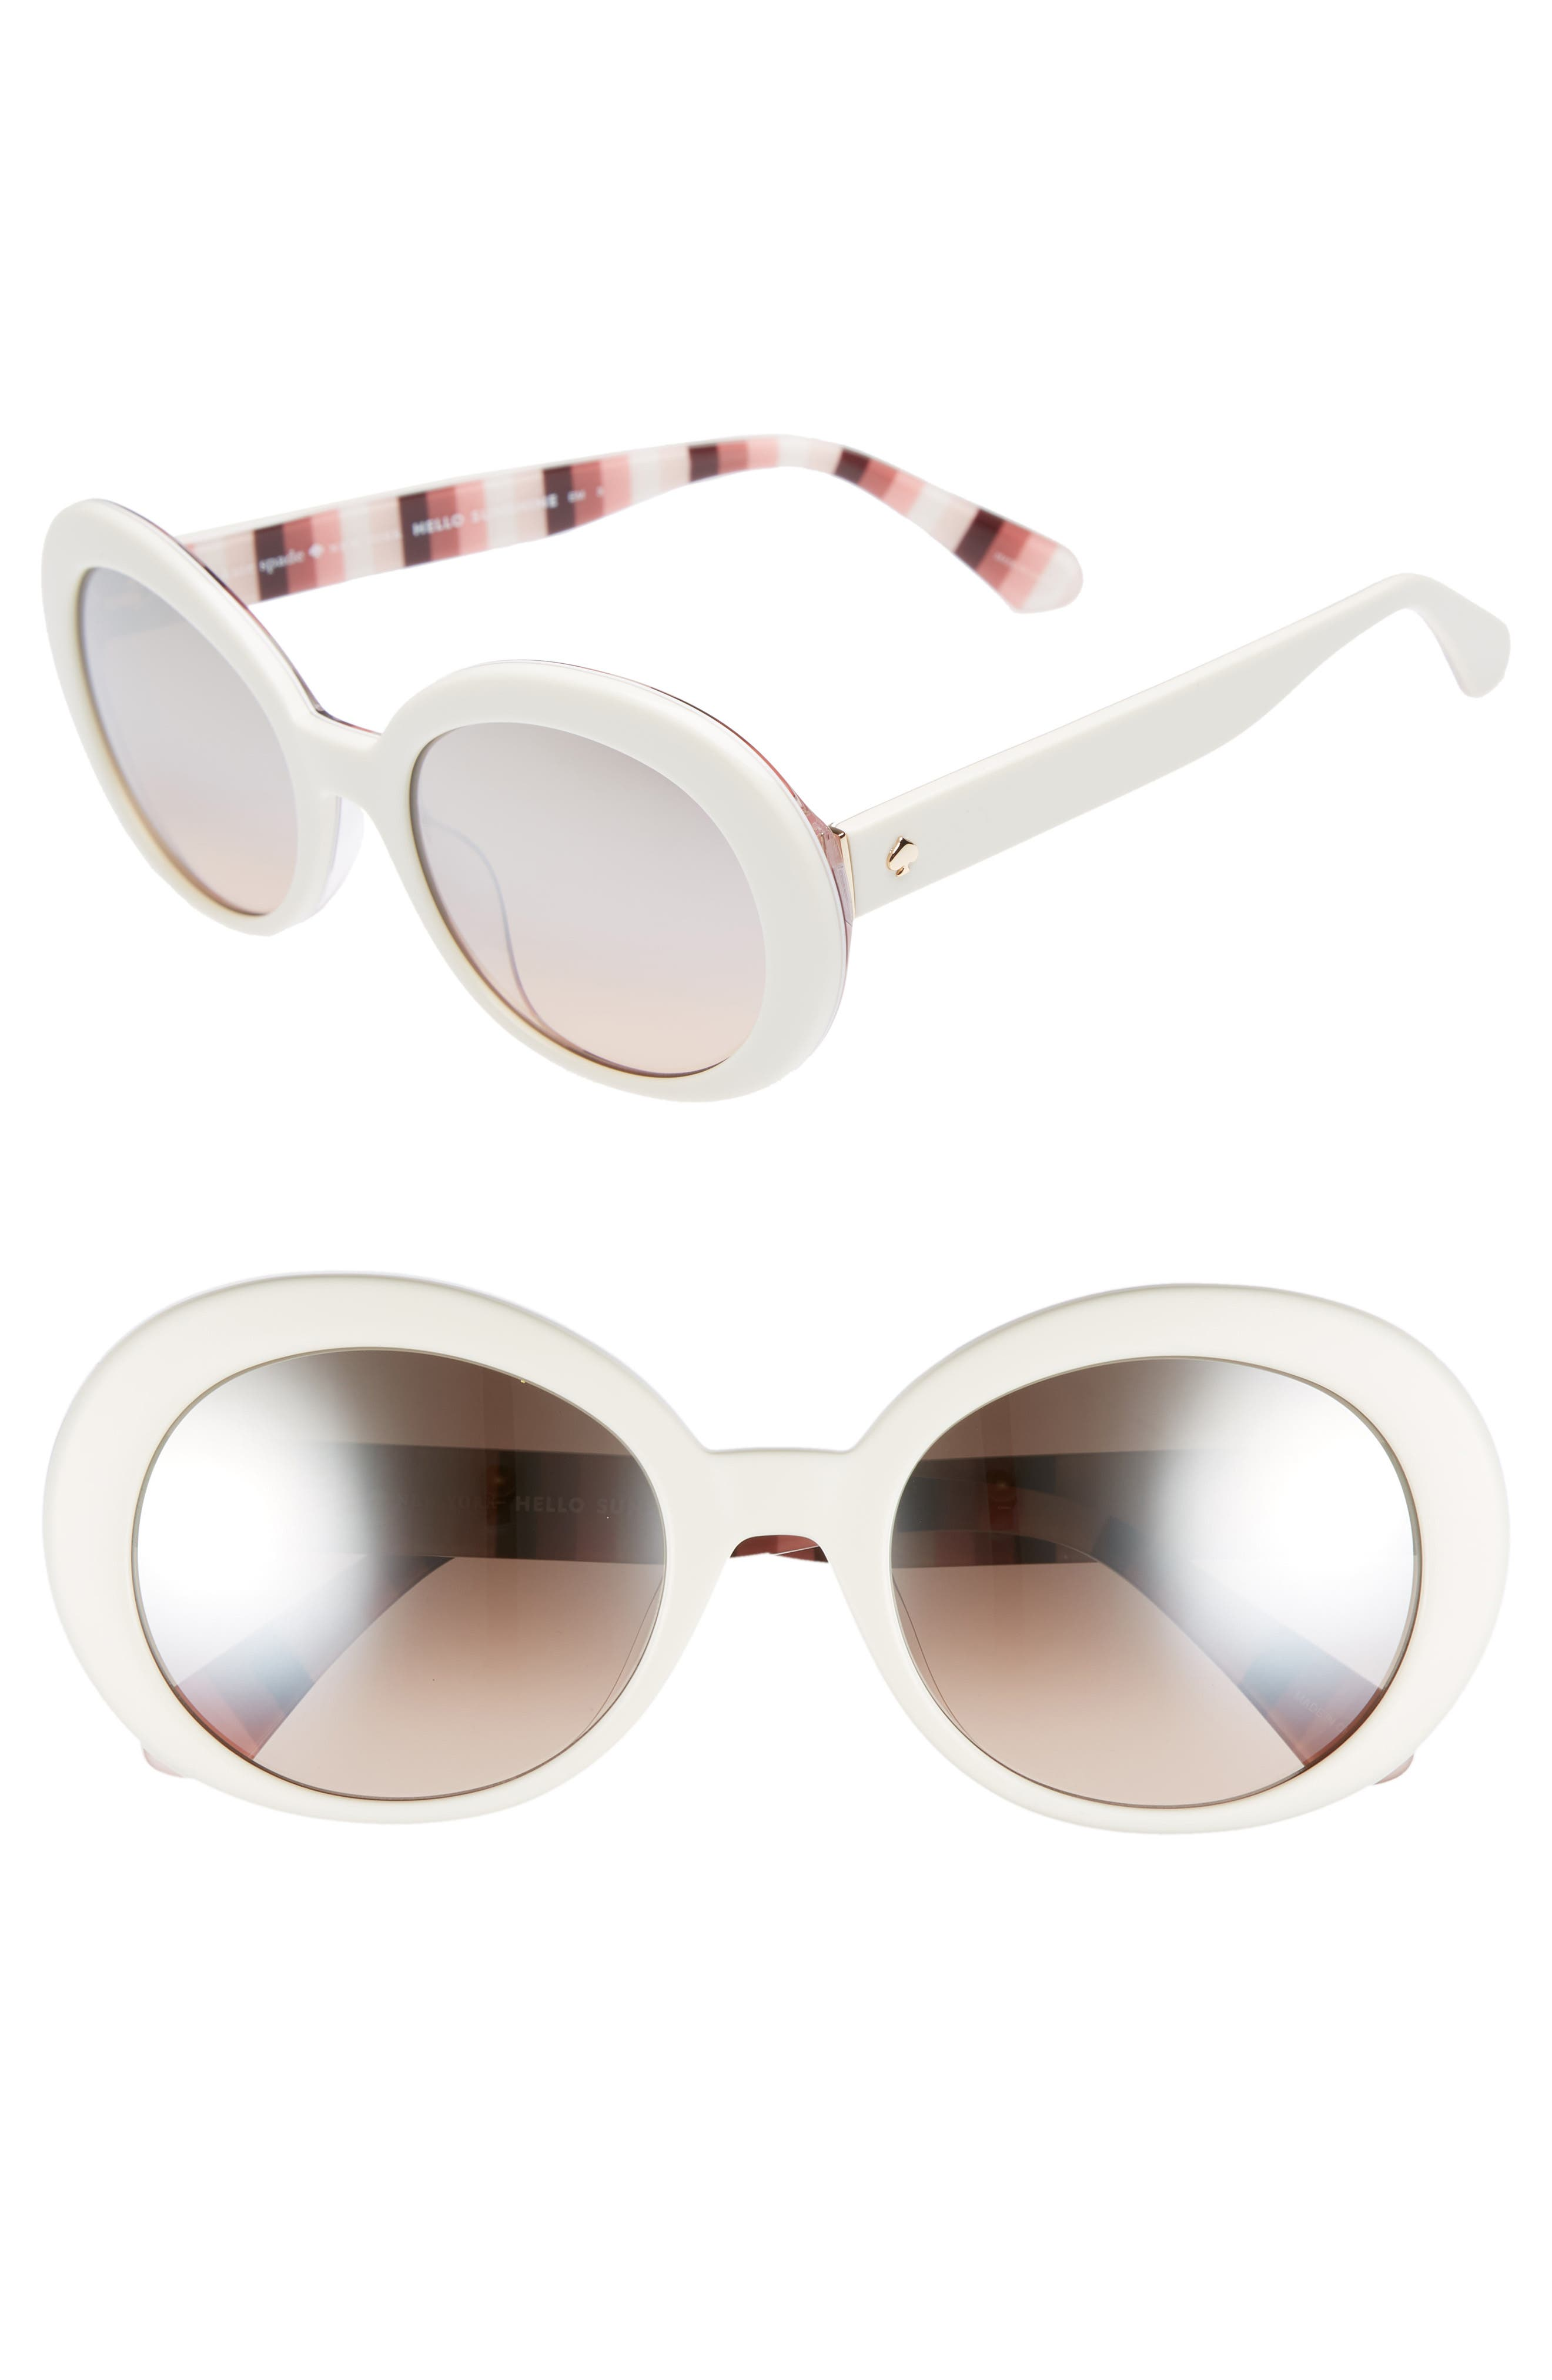 cindra 54mm gradient round sunglasses,                         Main,                         color, Ivory